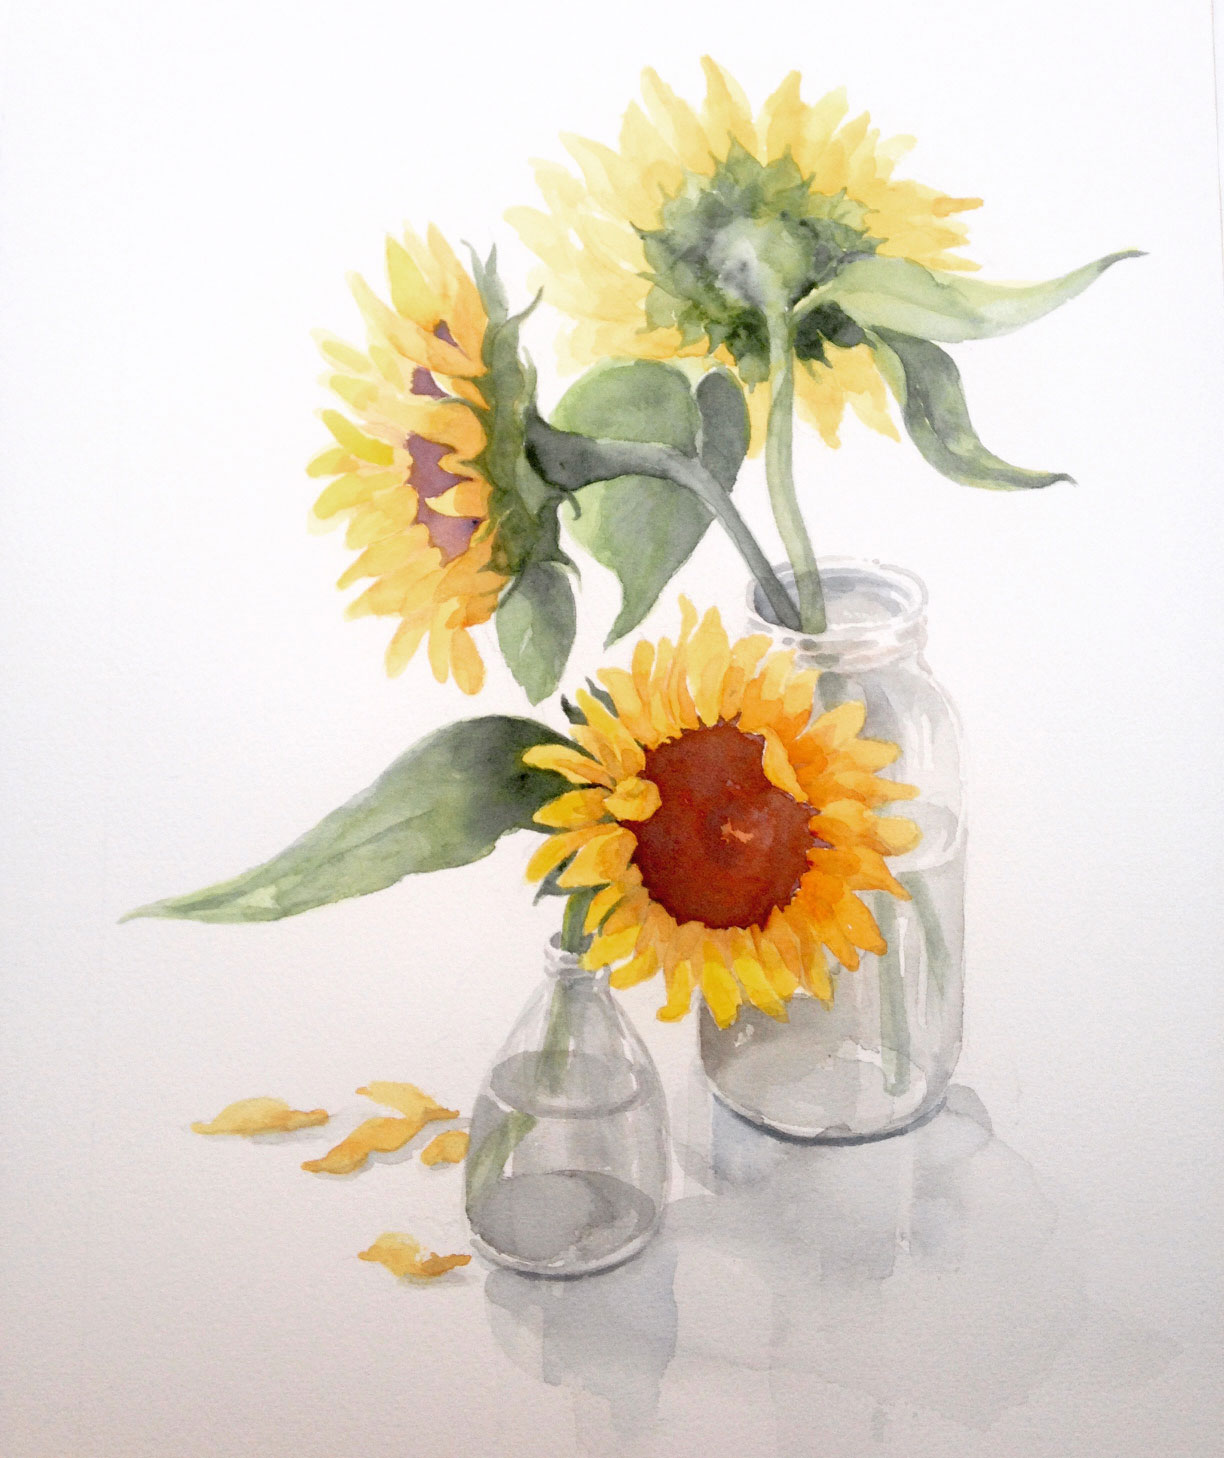 coco-connolly-sunflowers-christine---2.jpg